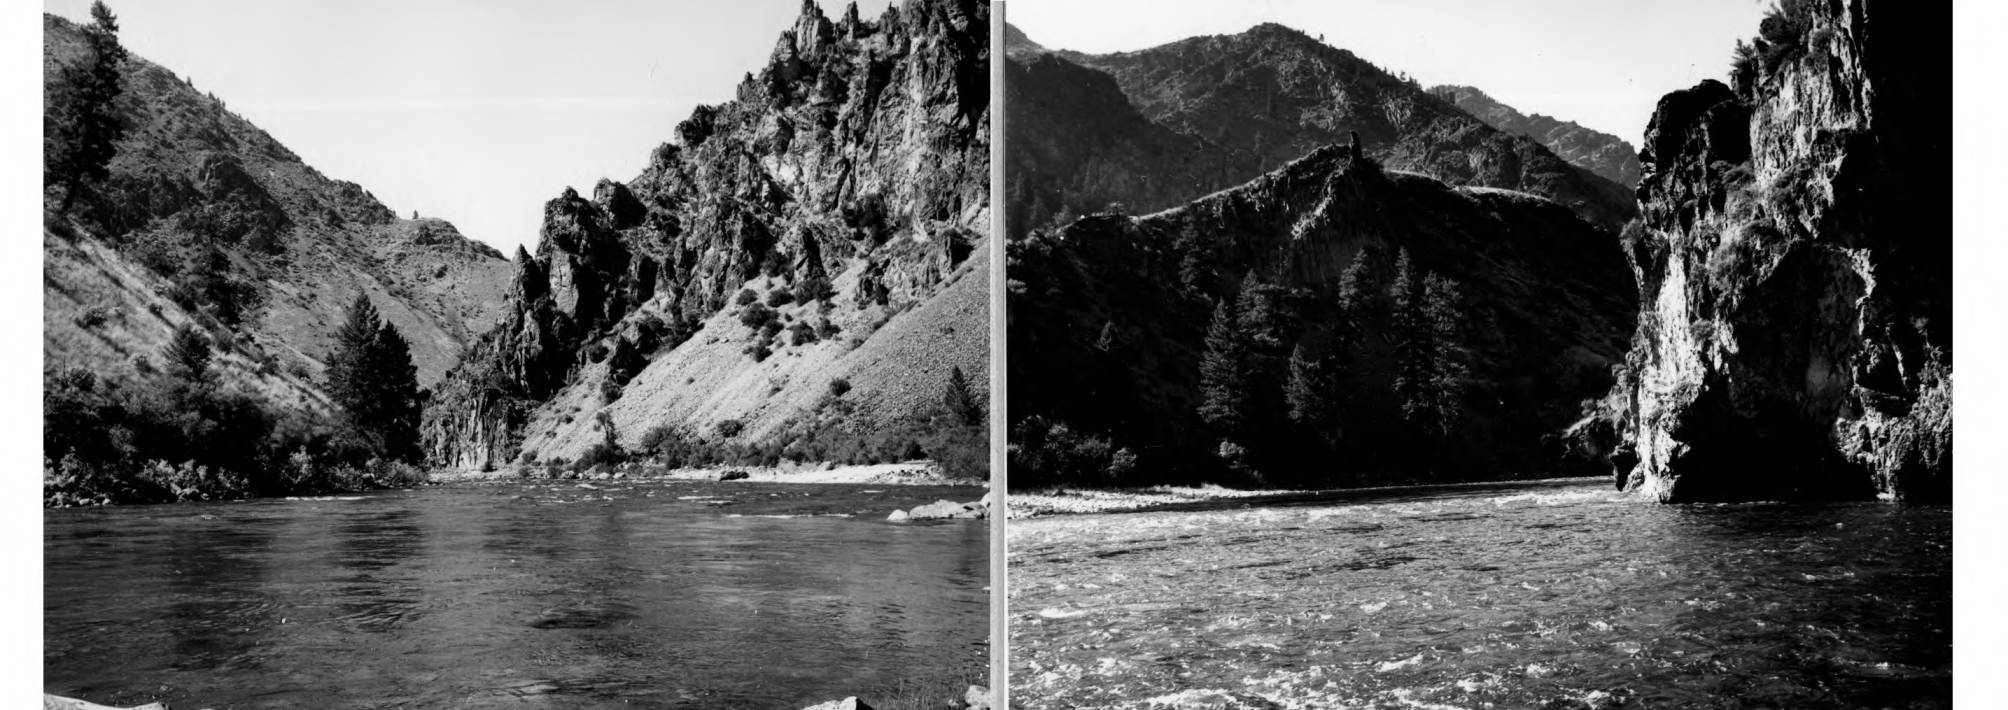 item thumbnail for Rattlesnake Campground, Middle Fork of the Salmon River